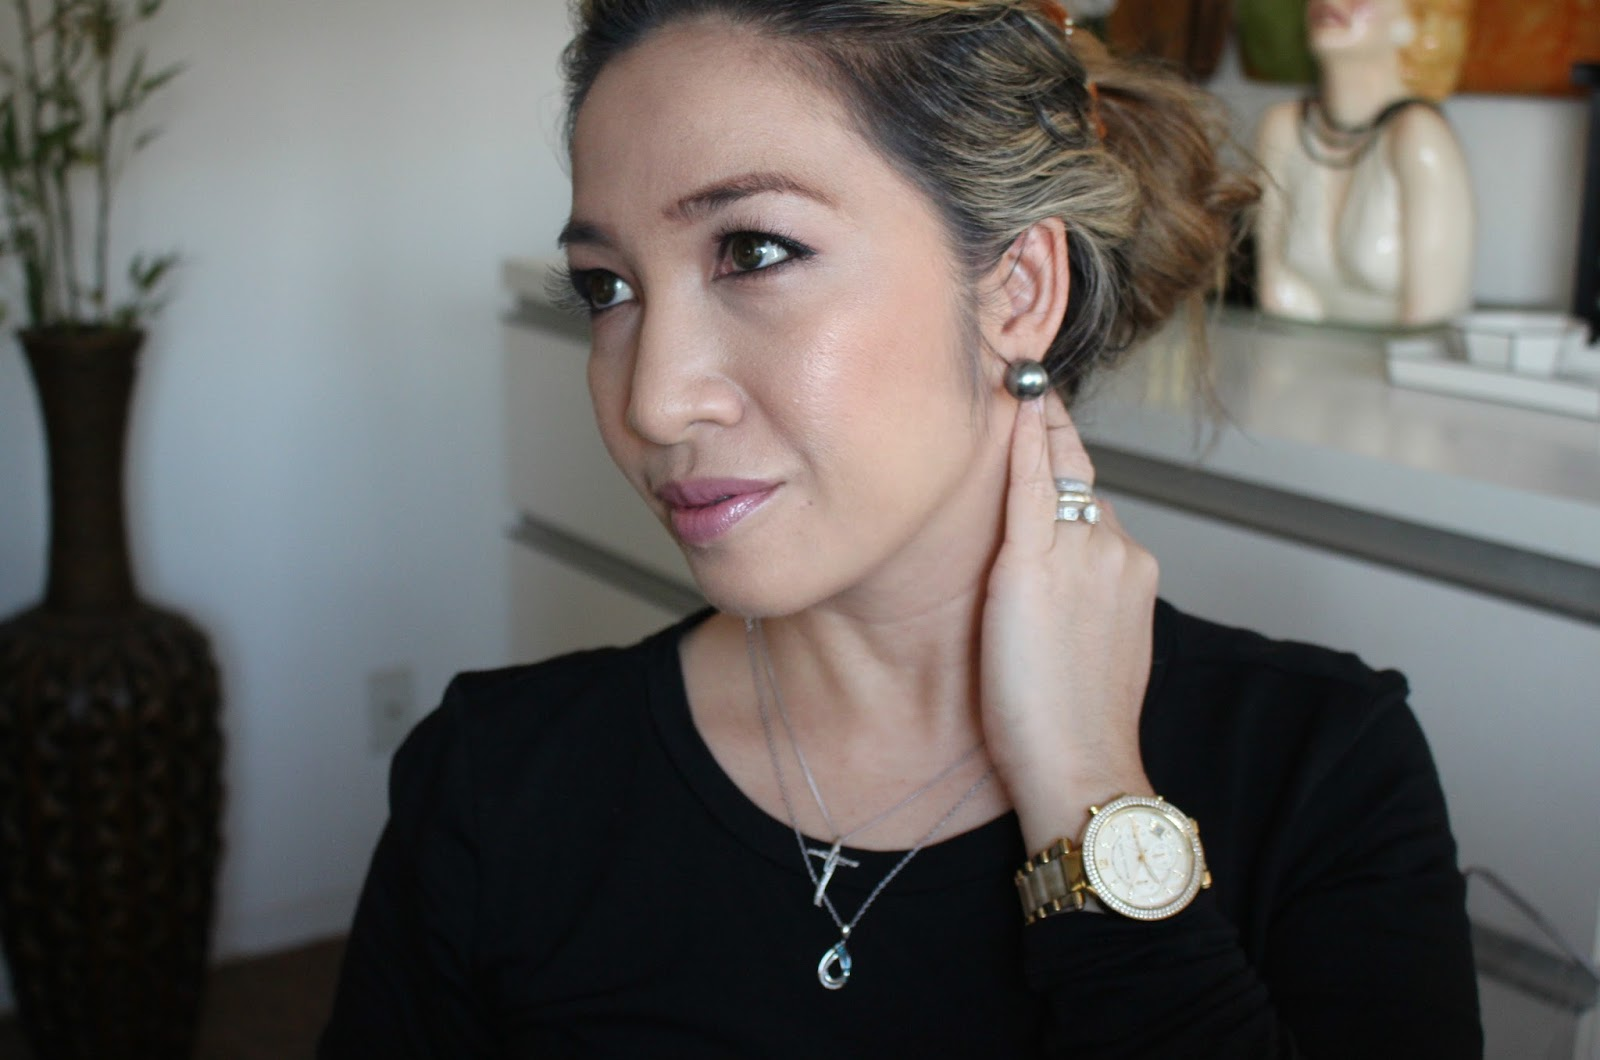 best foundation for oily and combination skin, estee lauder double wear stay in place makeup, diorskin airflash spray foundation,marc jacobs remarcable foundation, make up for ever velvet mat foundation, hourglass immaculate foundation, lancome teinte idole foundation